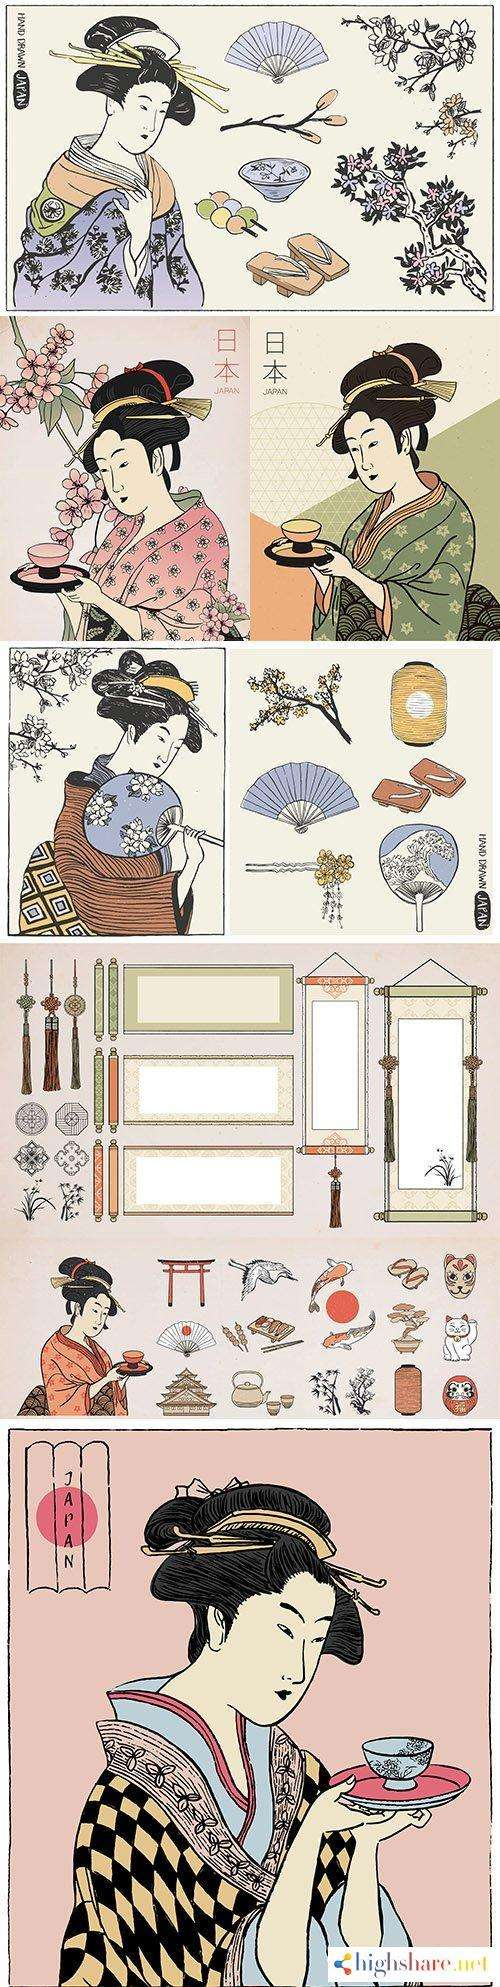 woman in kimono holds cup and set of japanese design elements 5f4e28749519c - Woman in kimono holds cup and set of Japanese design elements